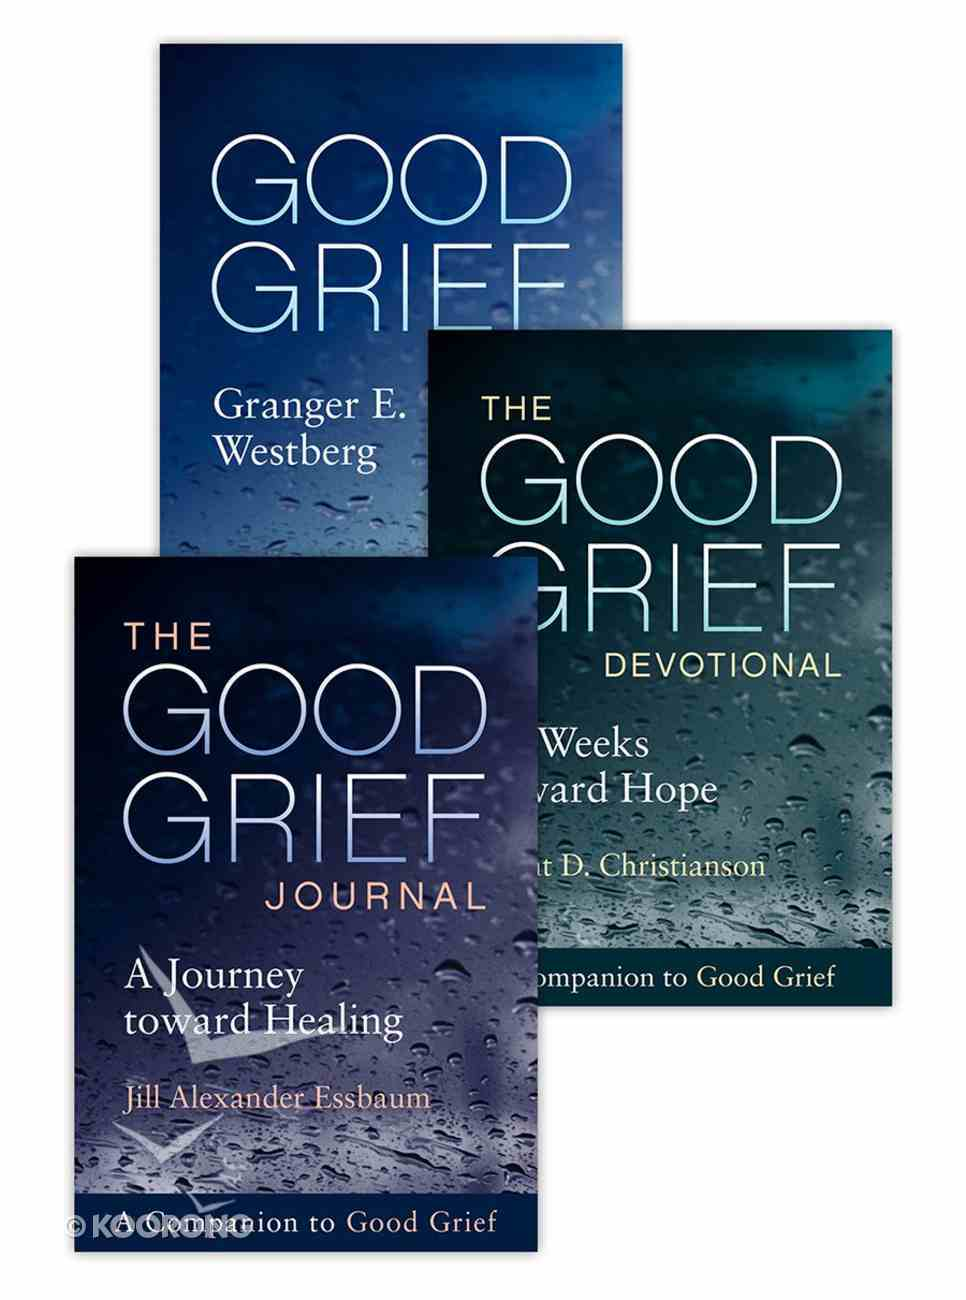 Good Grief: The Complete Set (Book, Devotional And Journal) Paperback